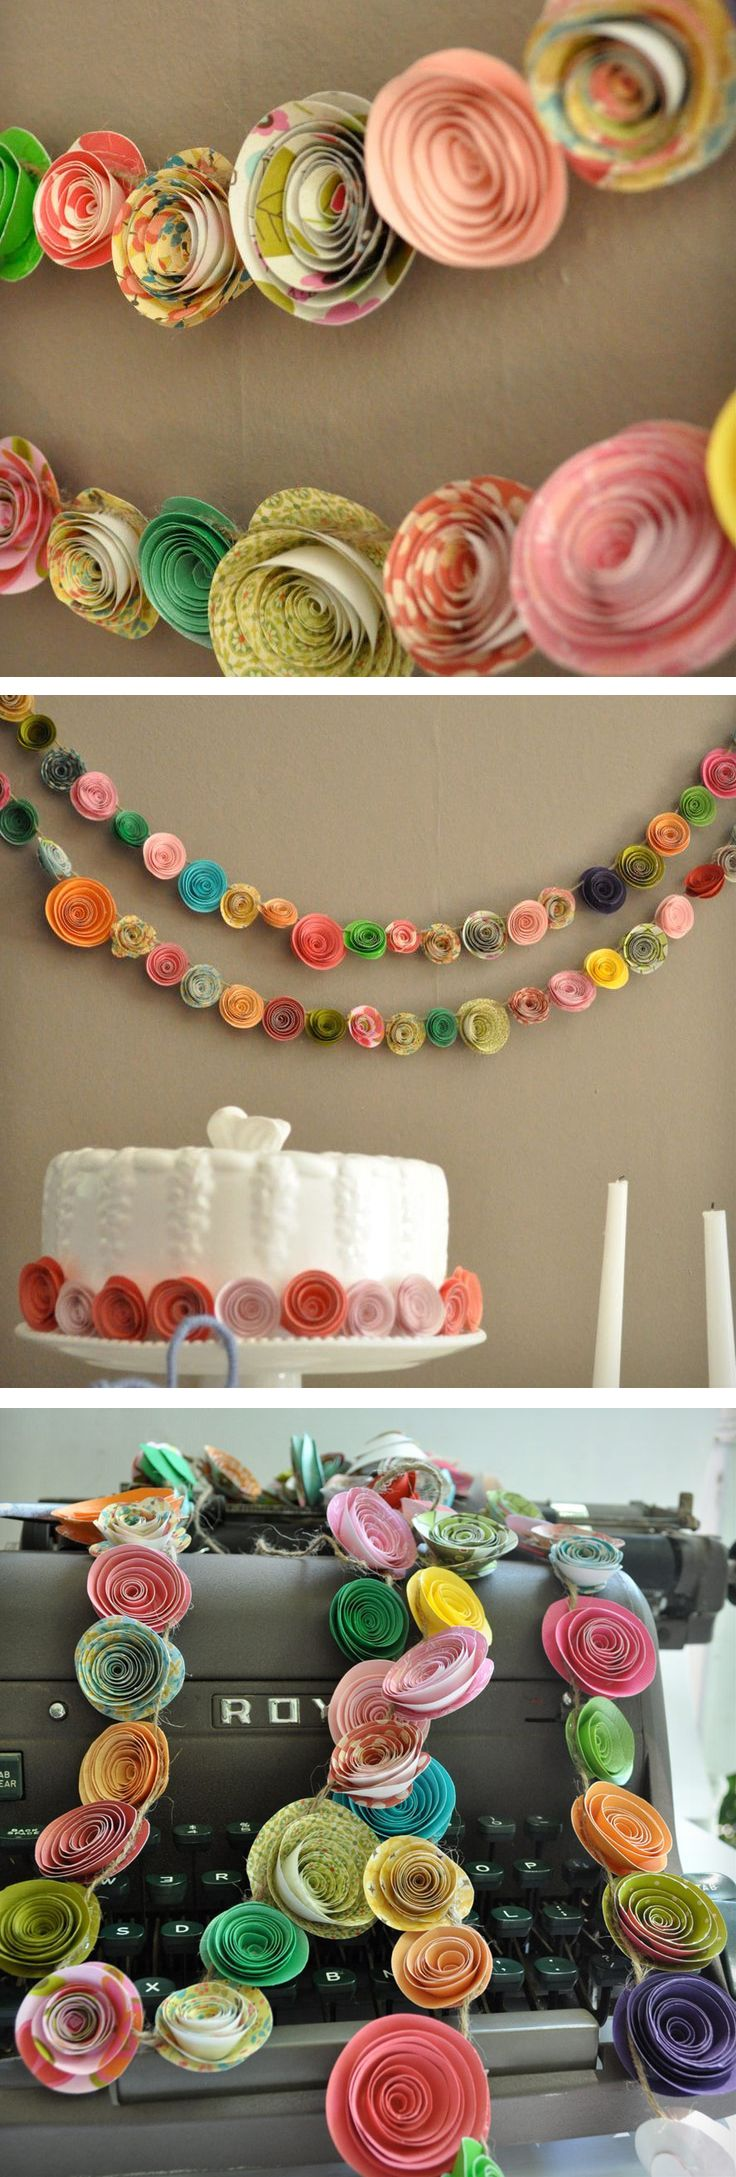 How to's : DIY paper flower garland